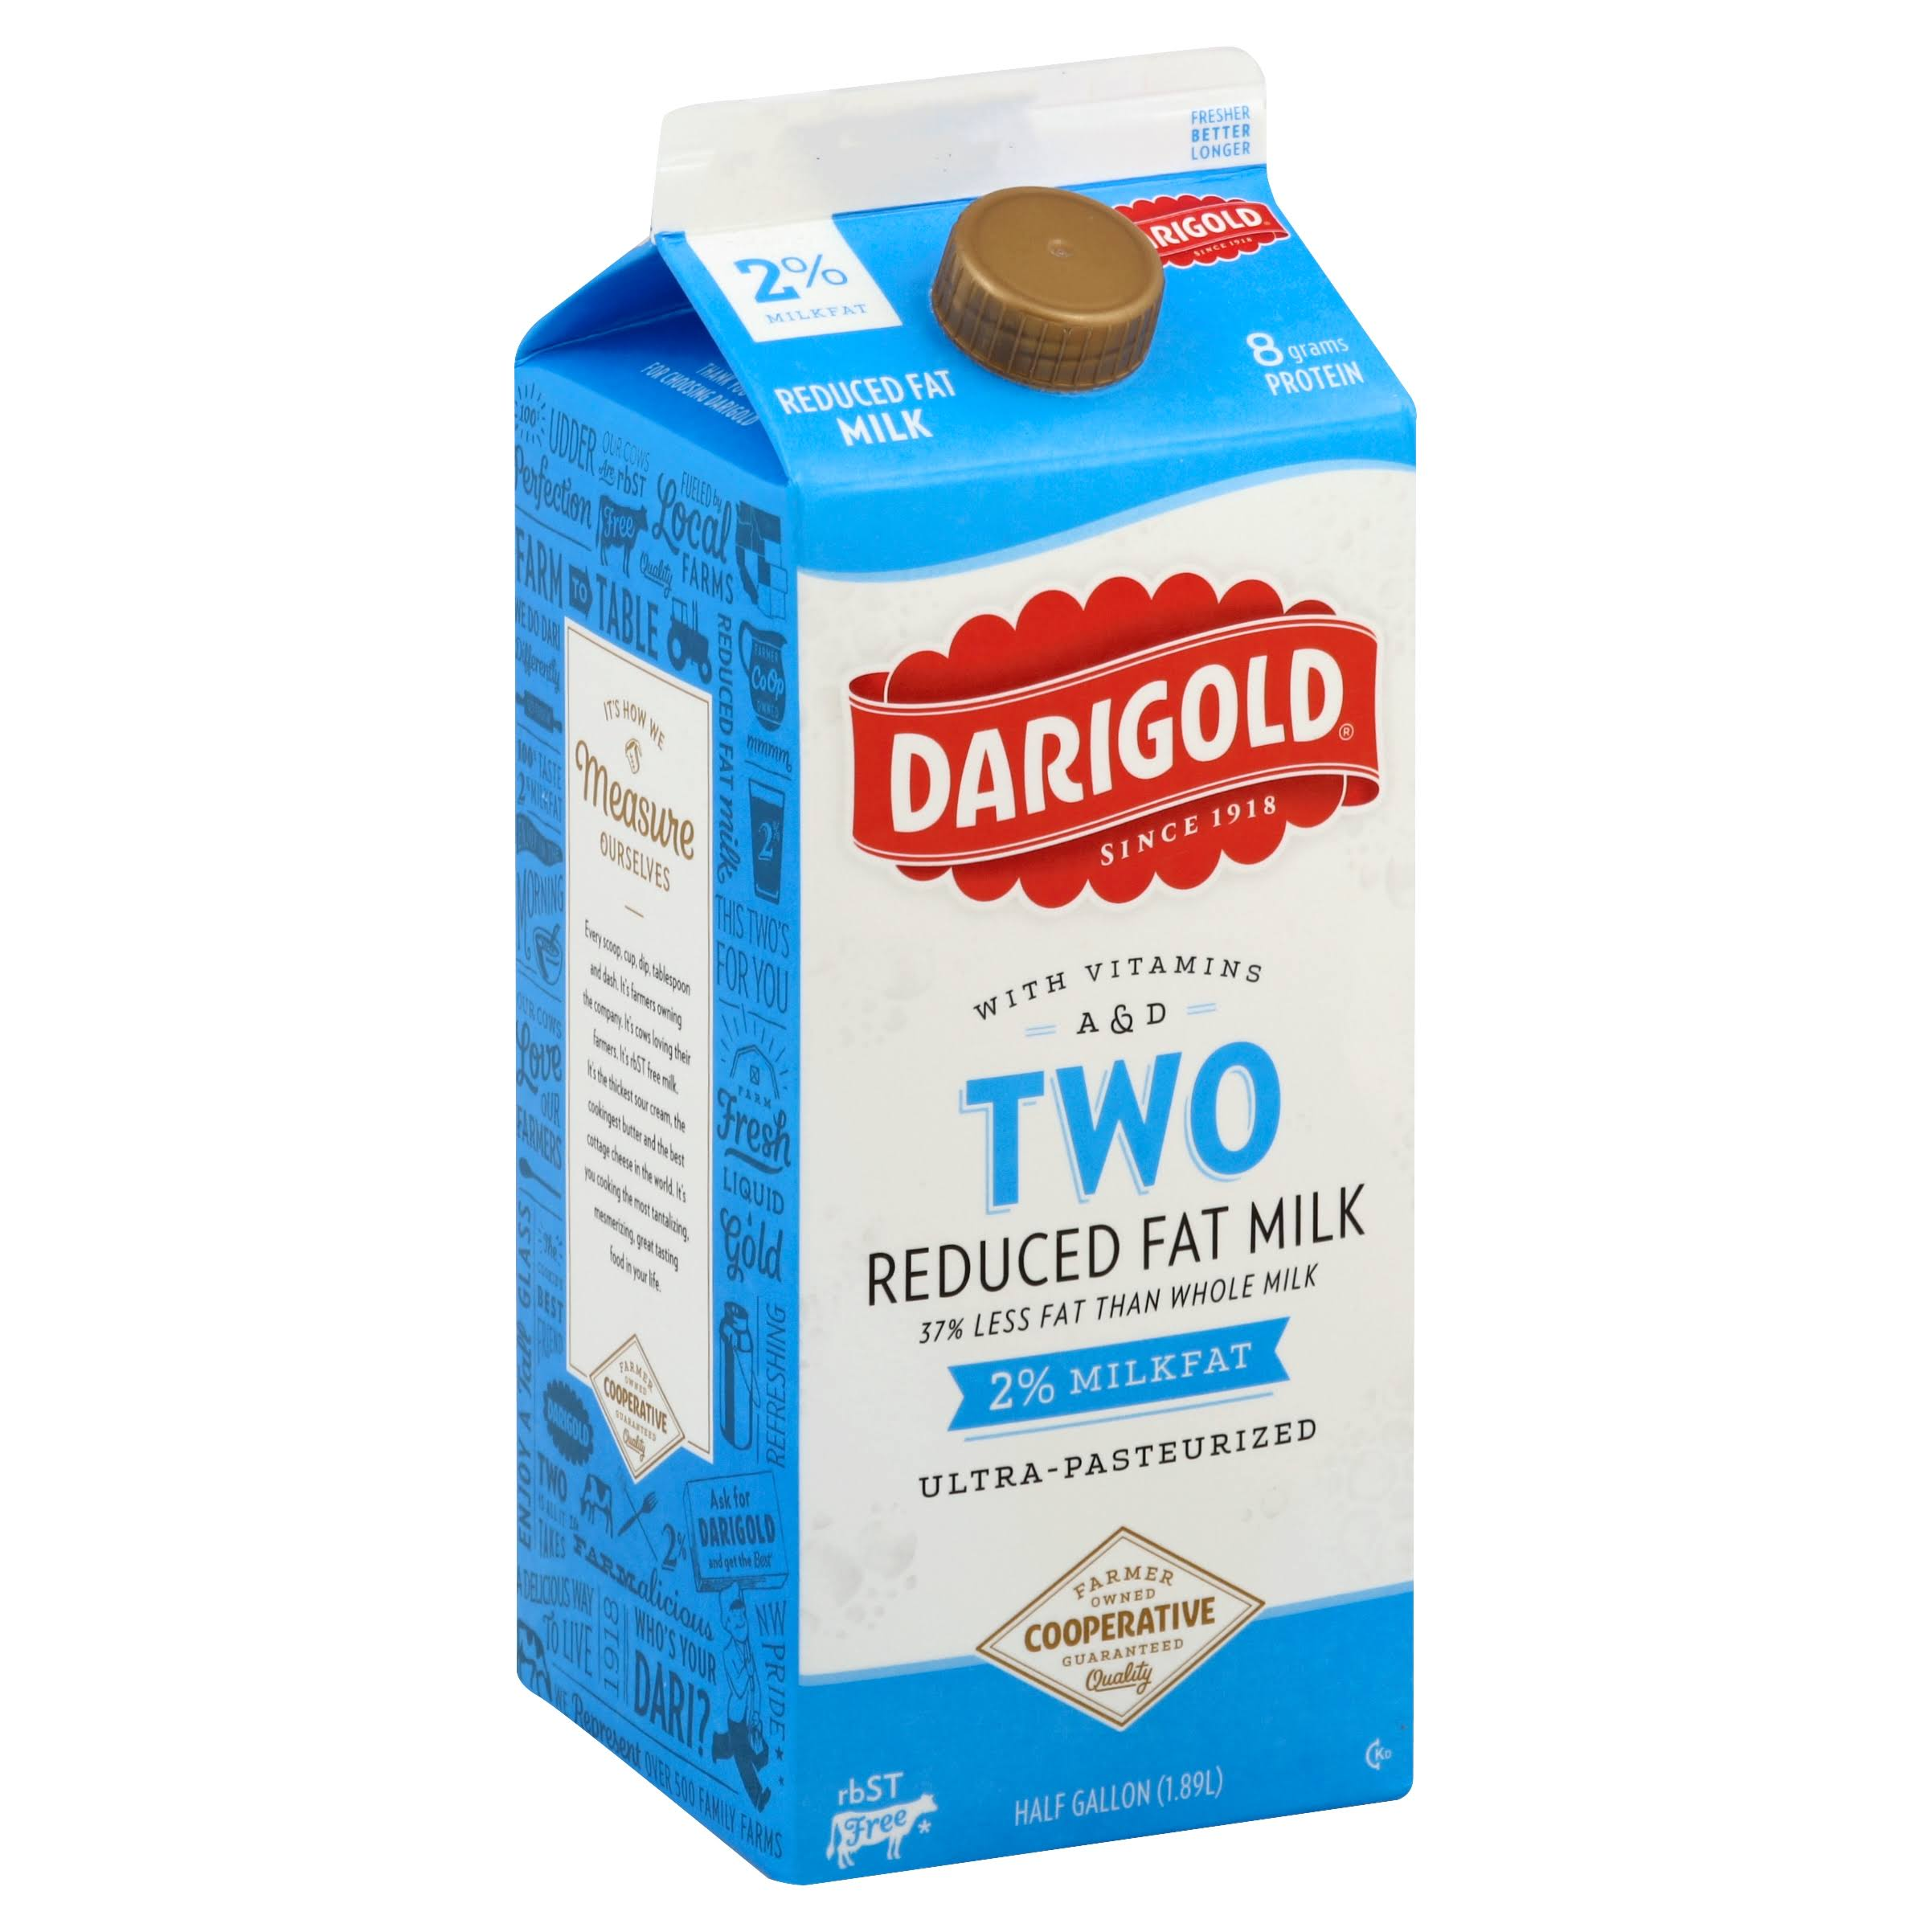 Darigold Two Reduced Fat Milk - 0.5 Gallon